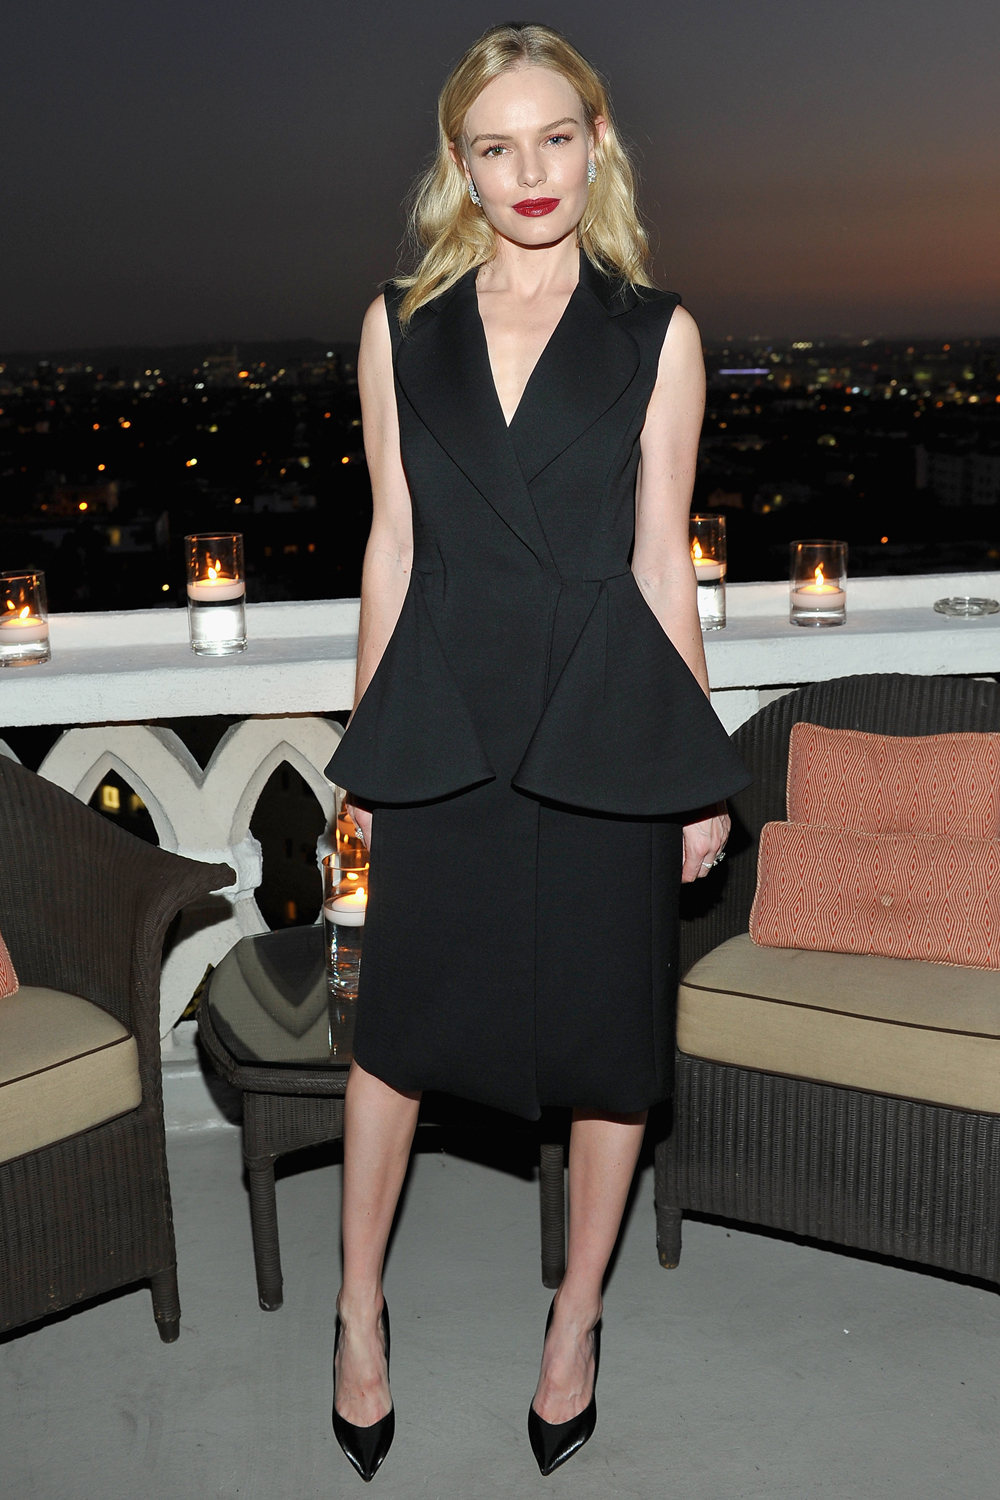 KateBosworth-IN-CHRISTIAN-DIOR-AT-DIOR-HOMMES-KRIS-VAN-ASSCHE-COCKTAIL-EVENT